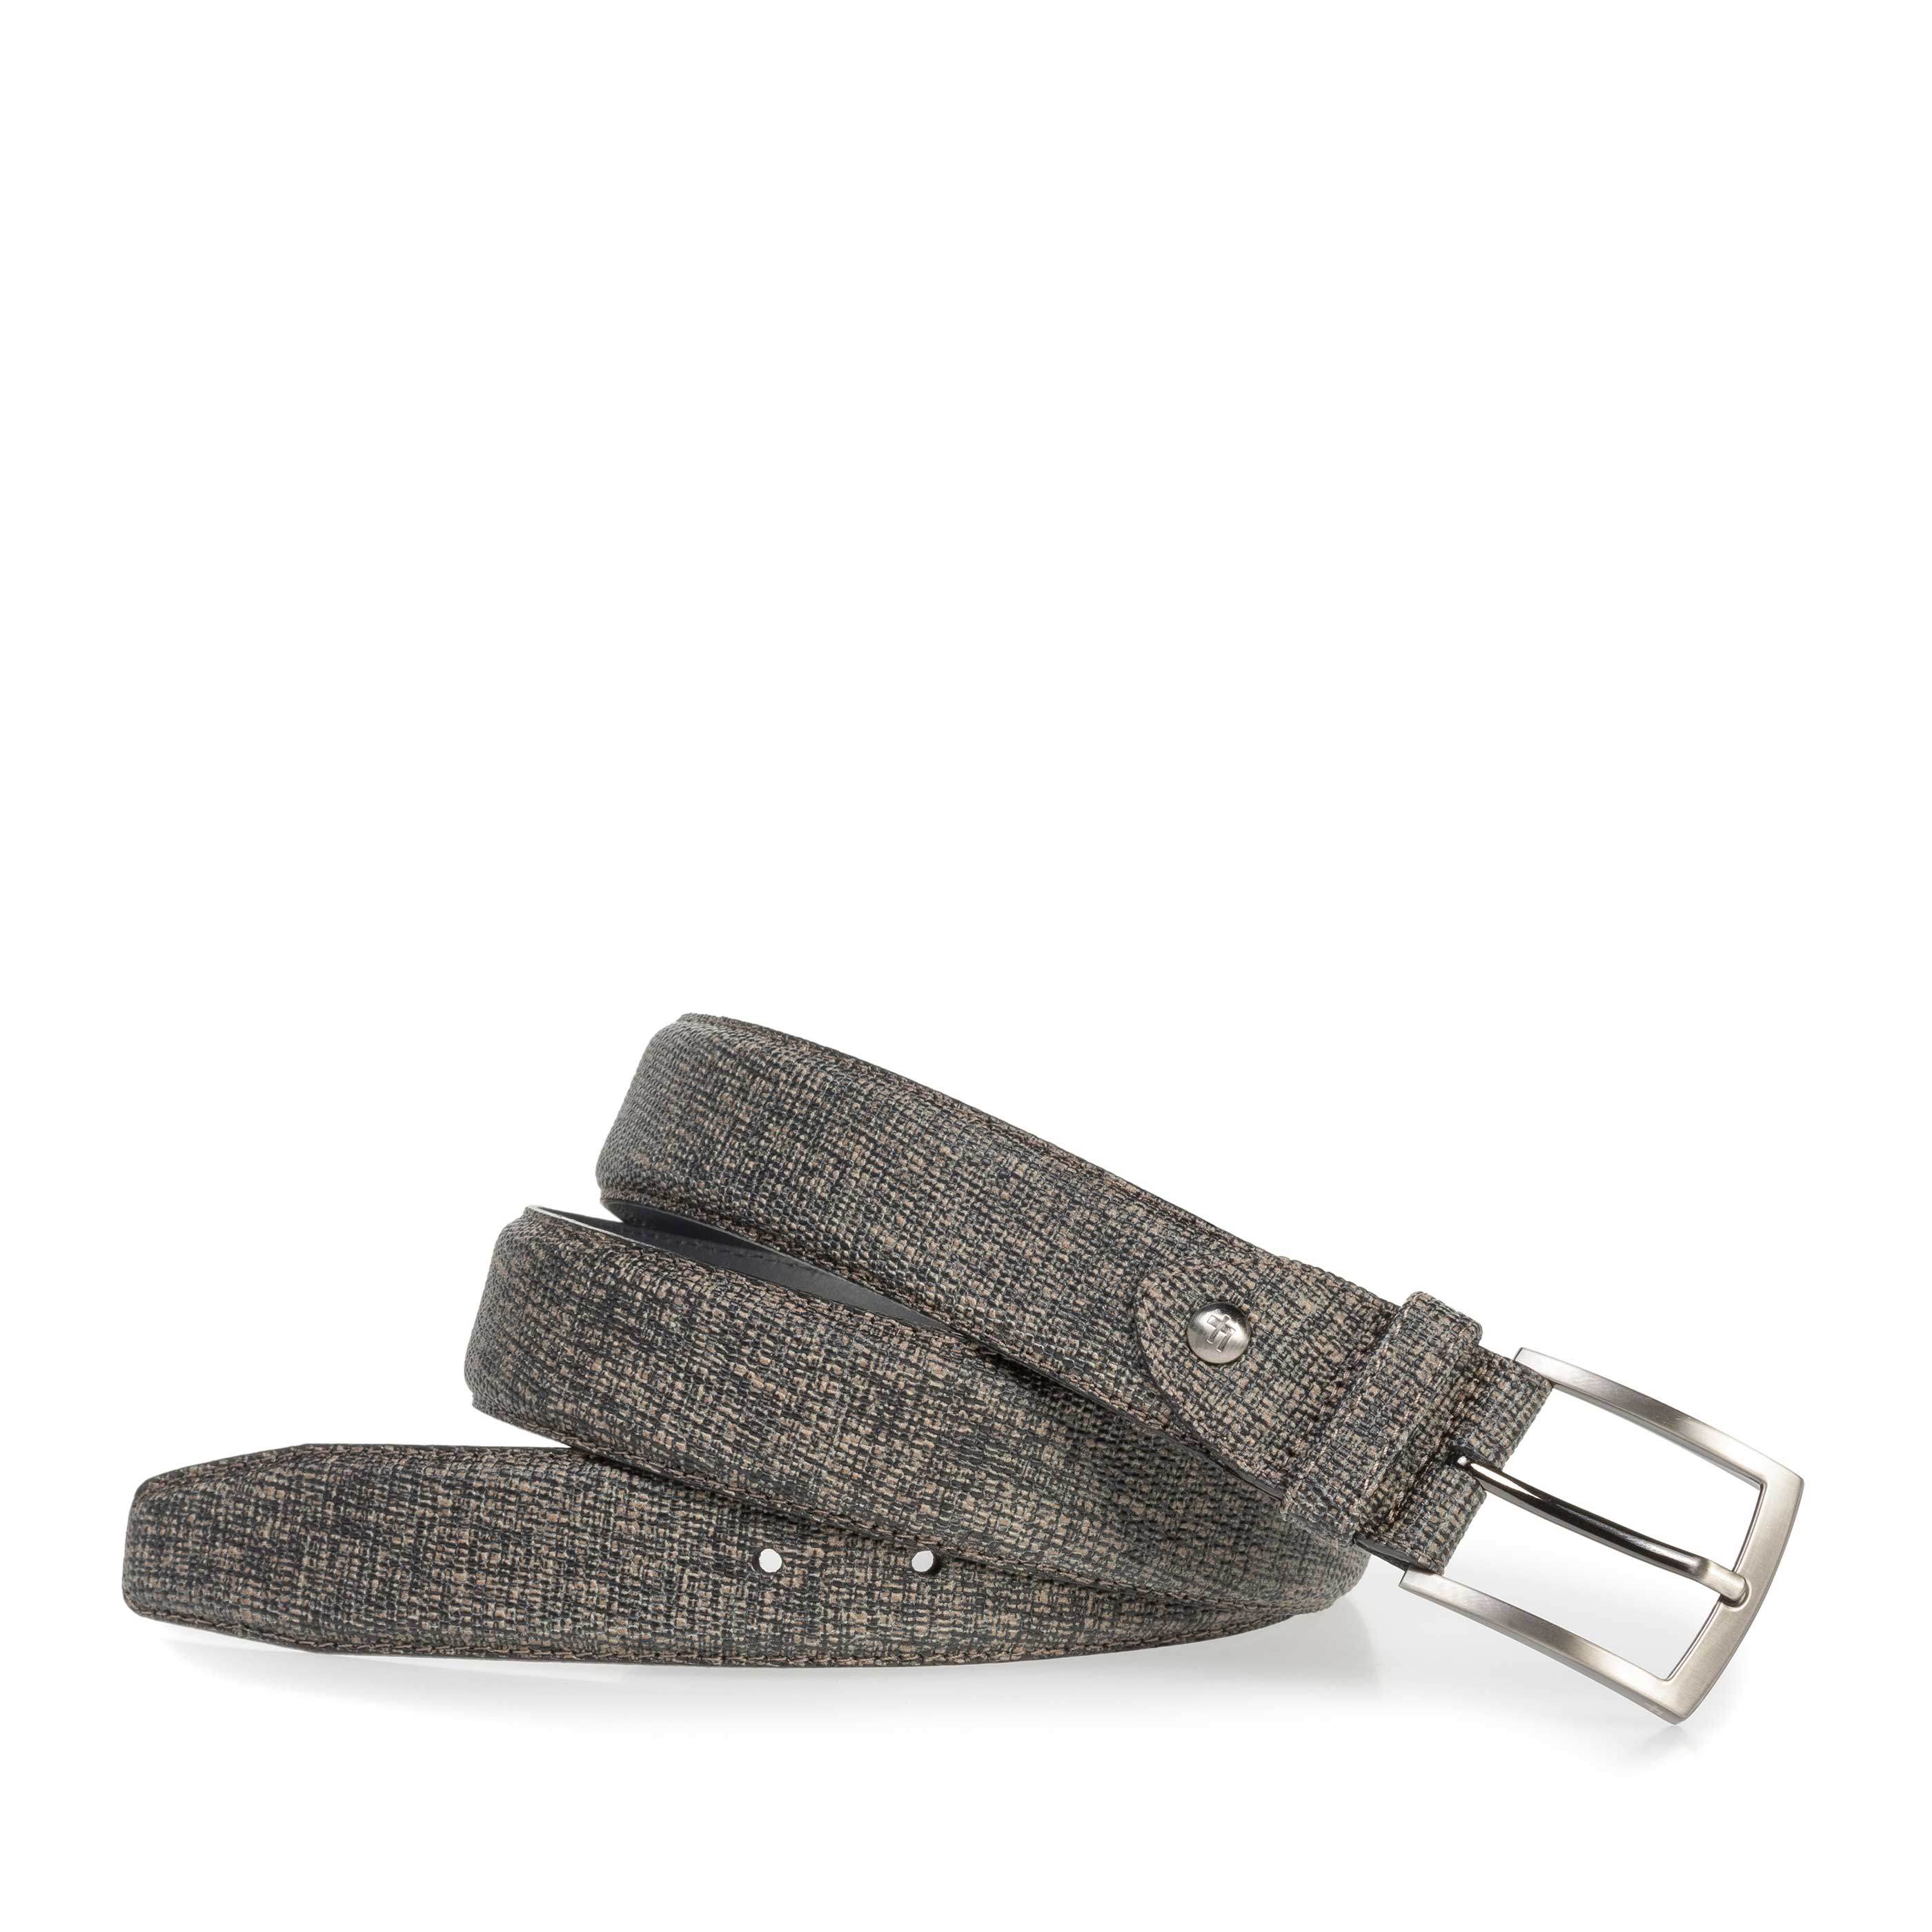 75201/14 - Taupe-coloured leather belt with black print